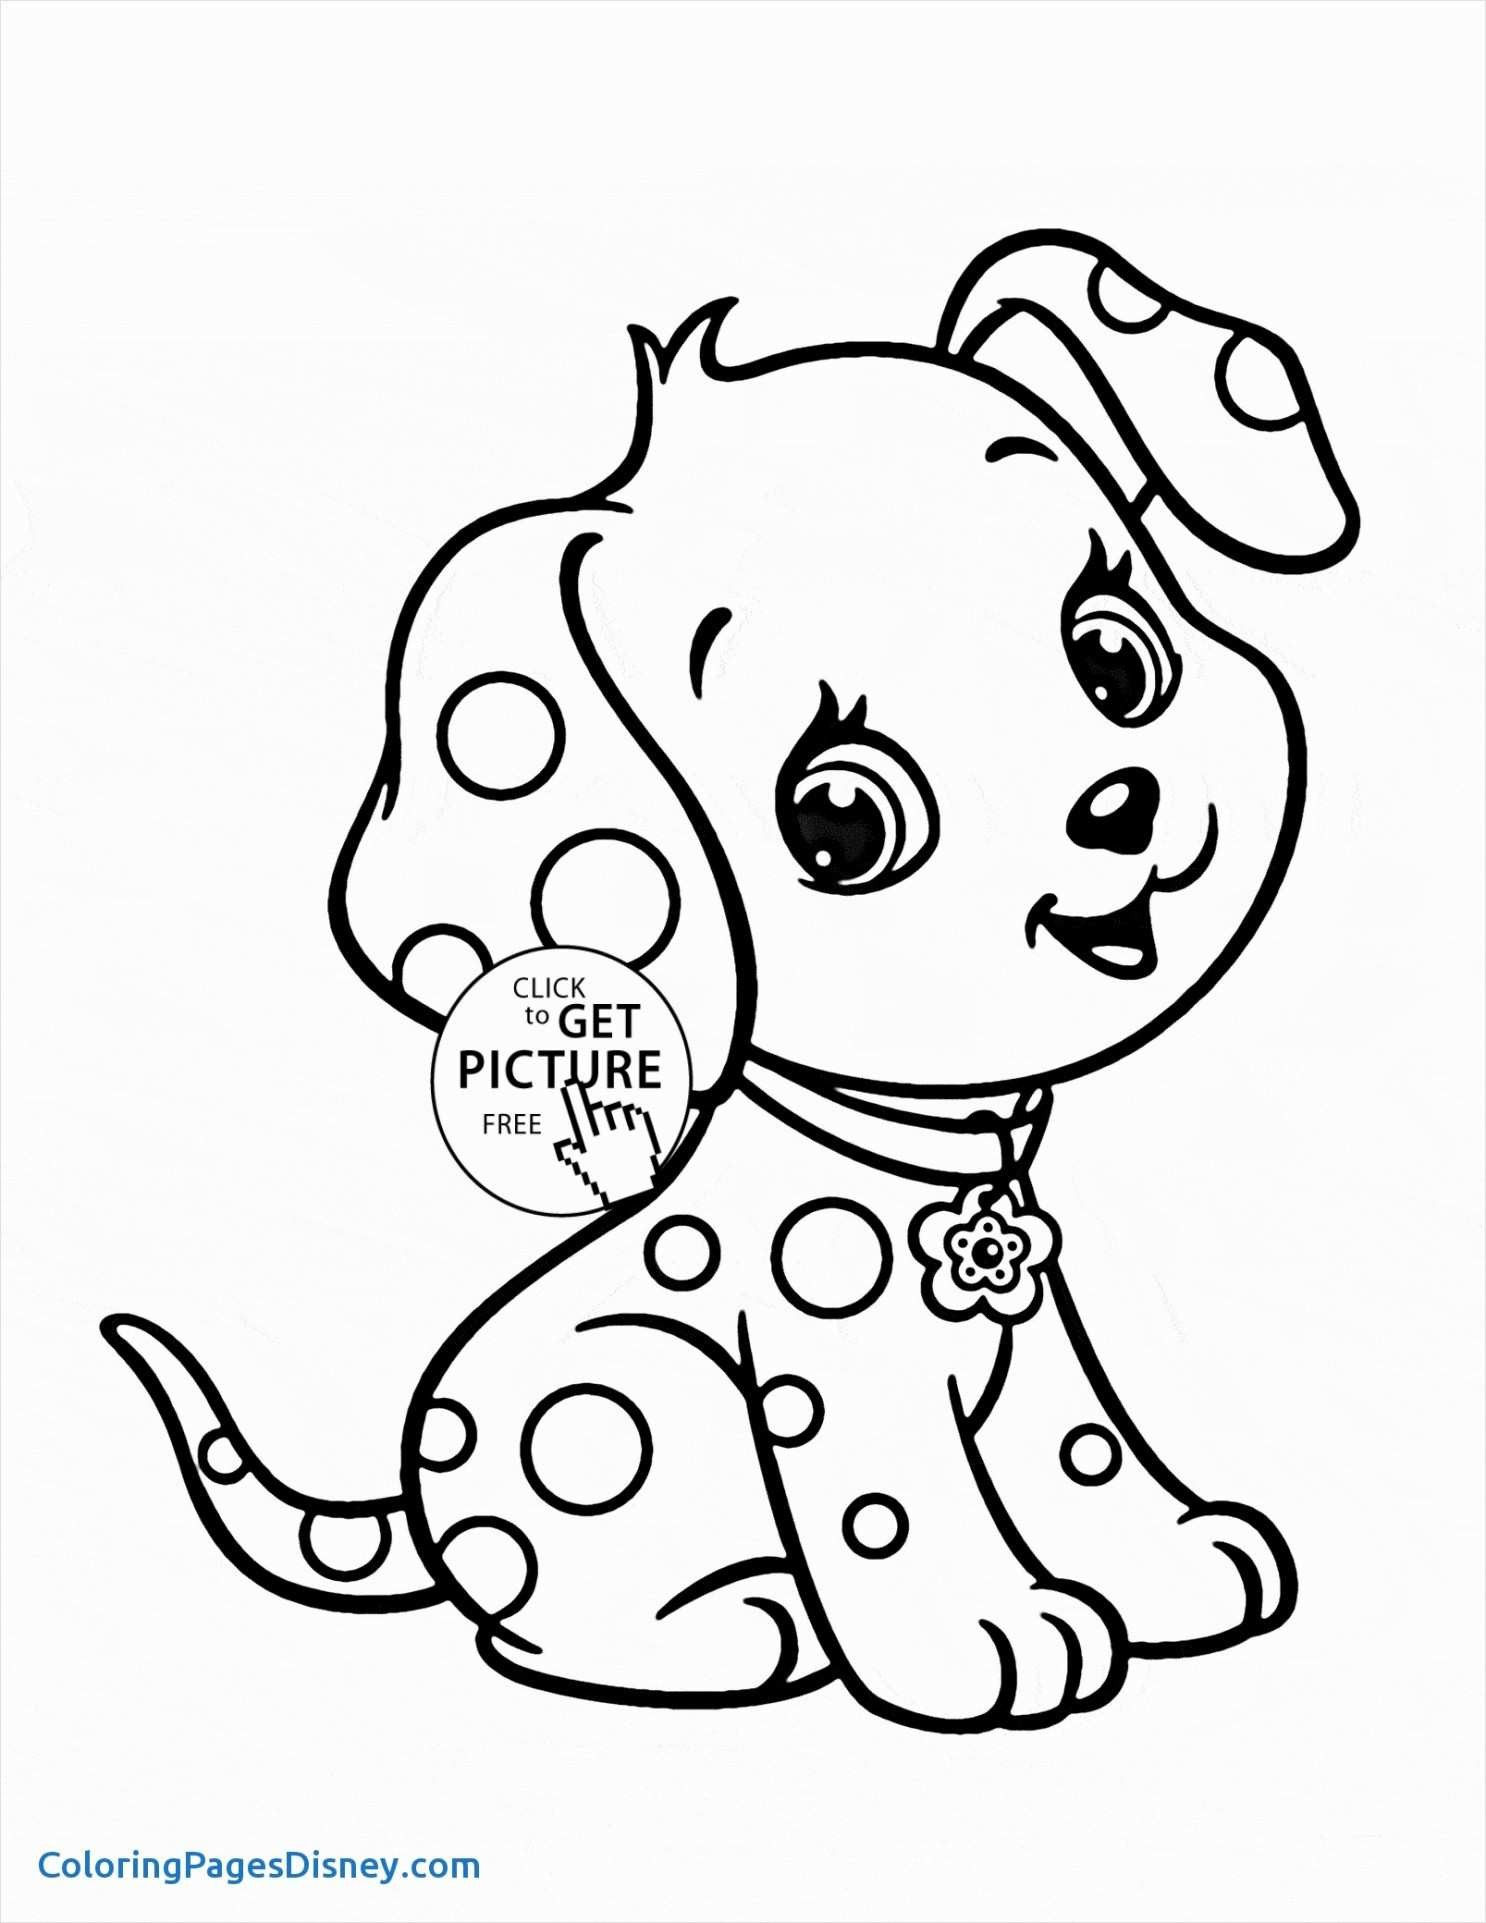 Dory Coloring Pages Finding Nemo Characters Coloring Pages Inspirational Dory Coloring